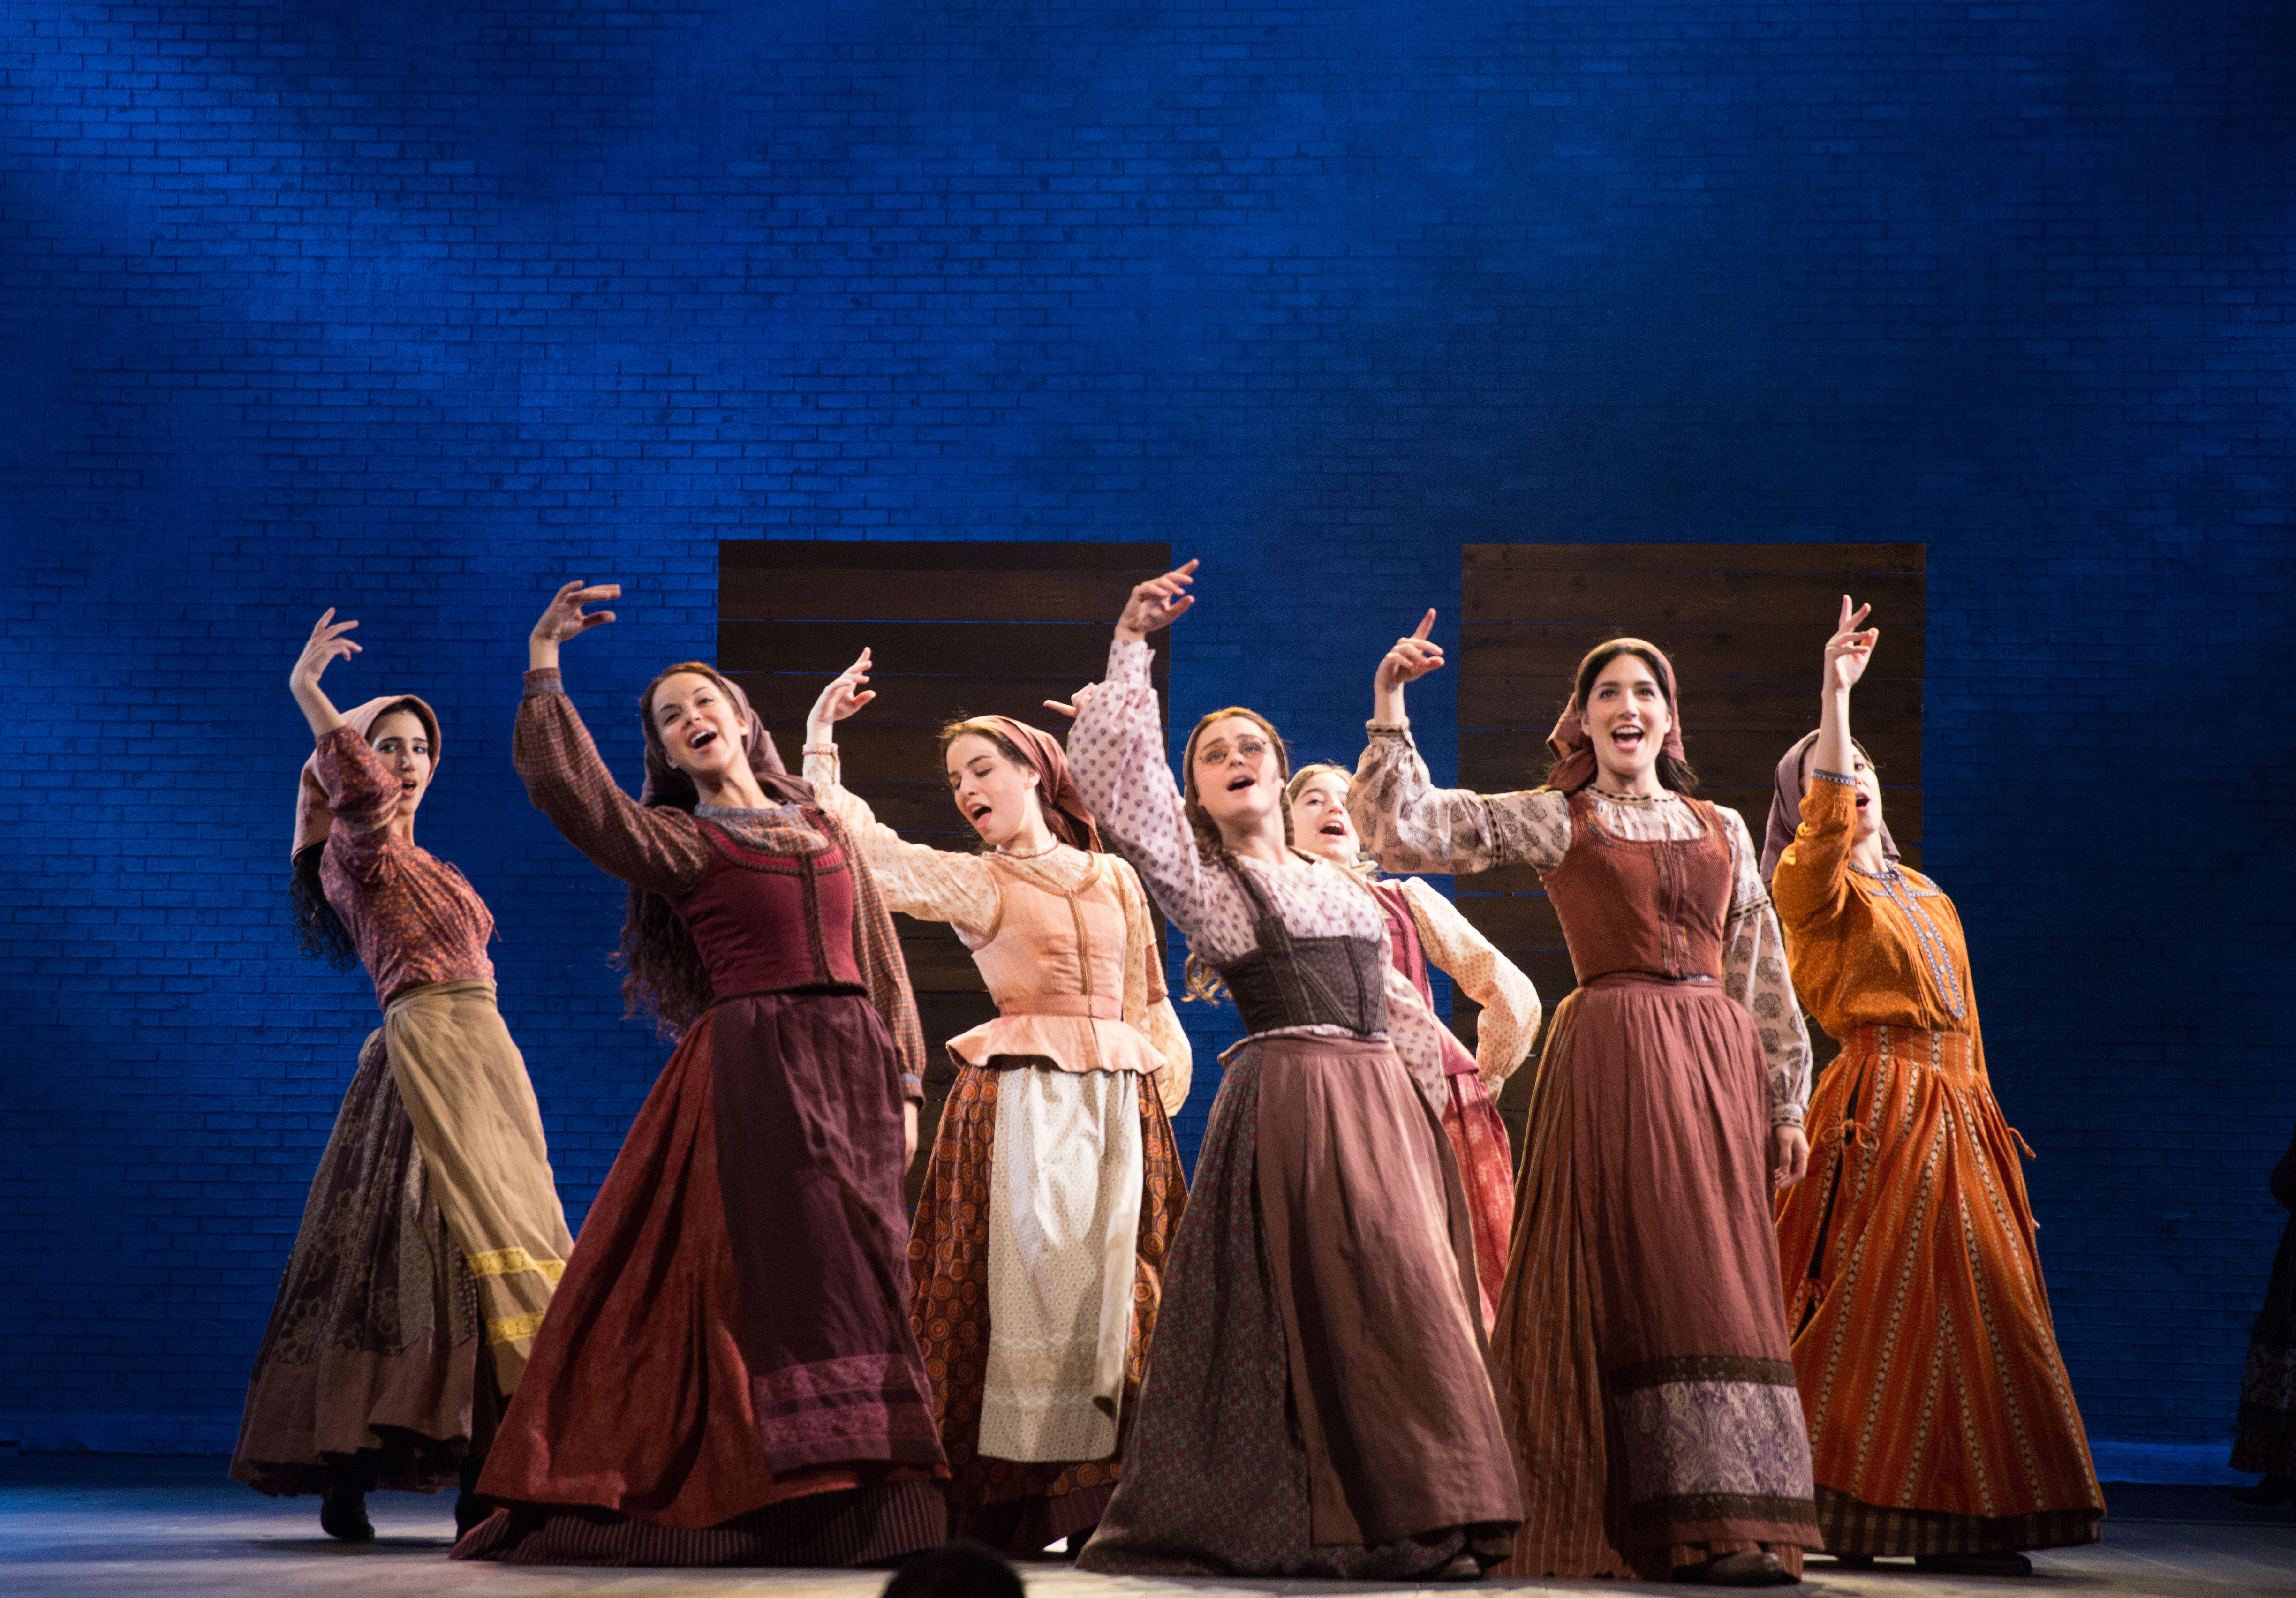 This Production of Fiddler Embraces Its Jewish Identity